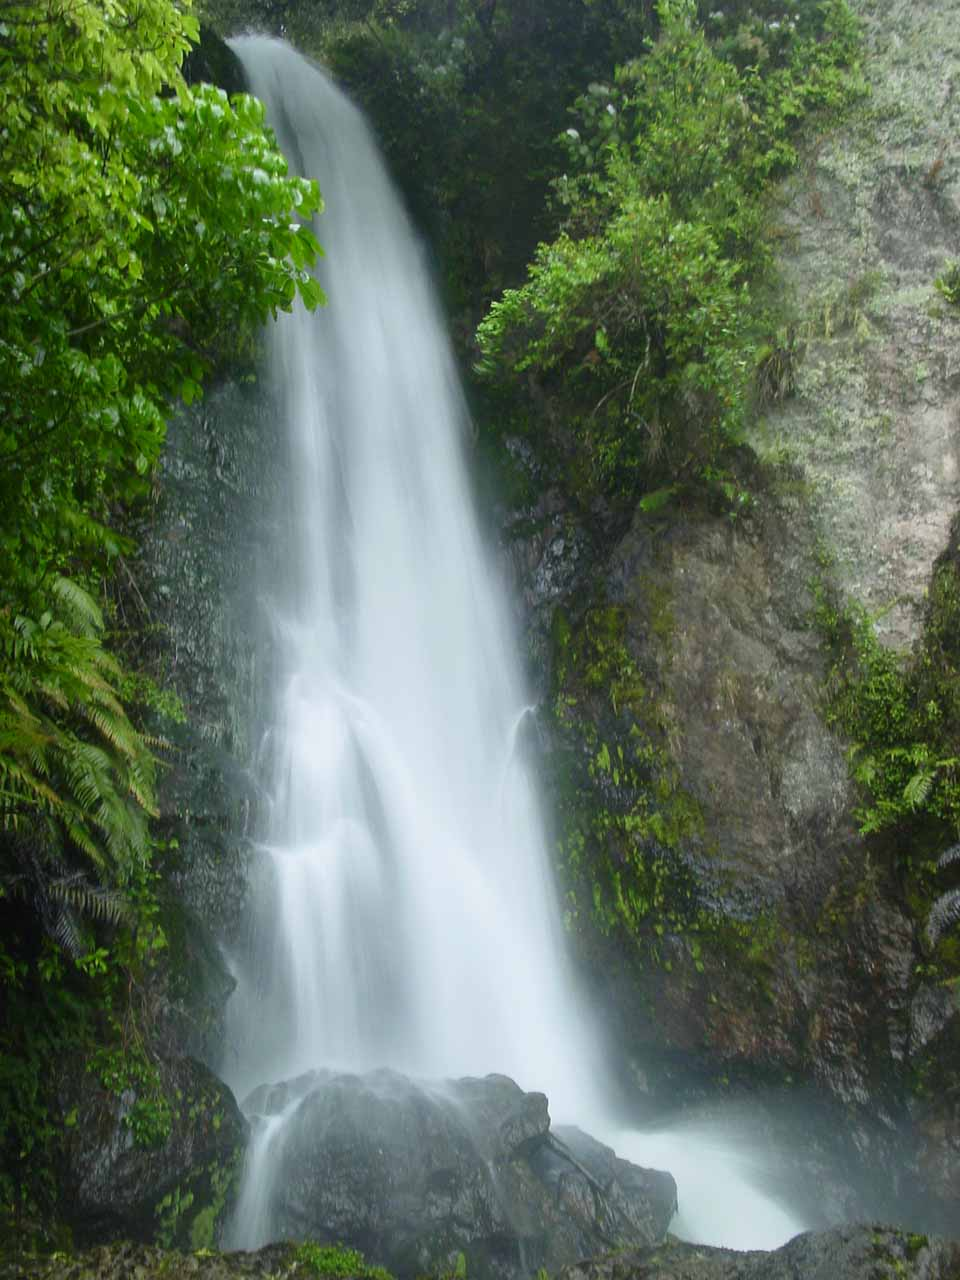 Our first clean look at the front of Te Wairoa Falls